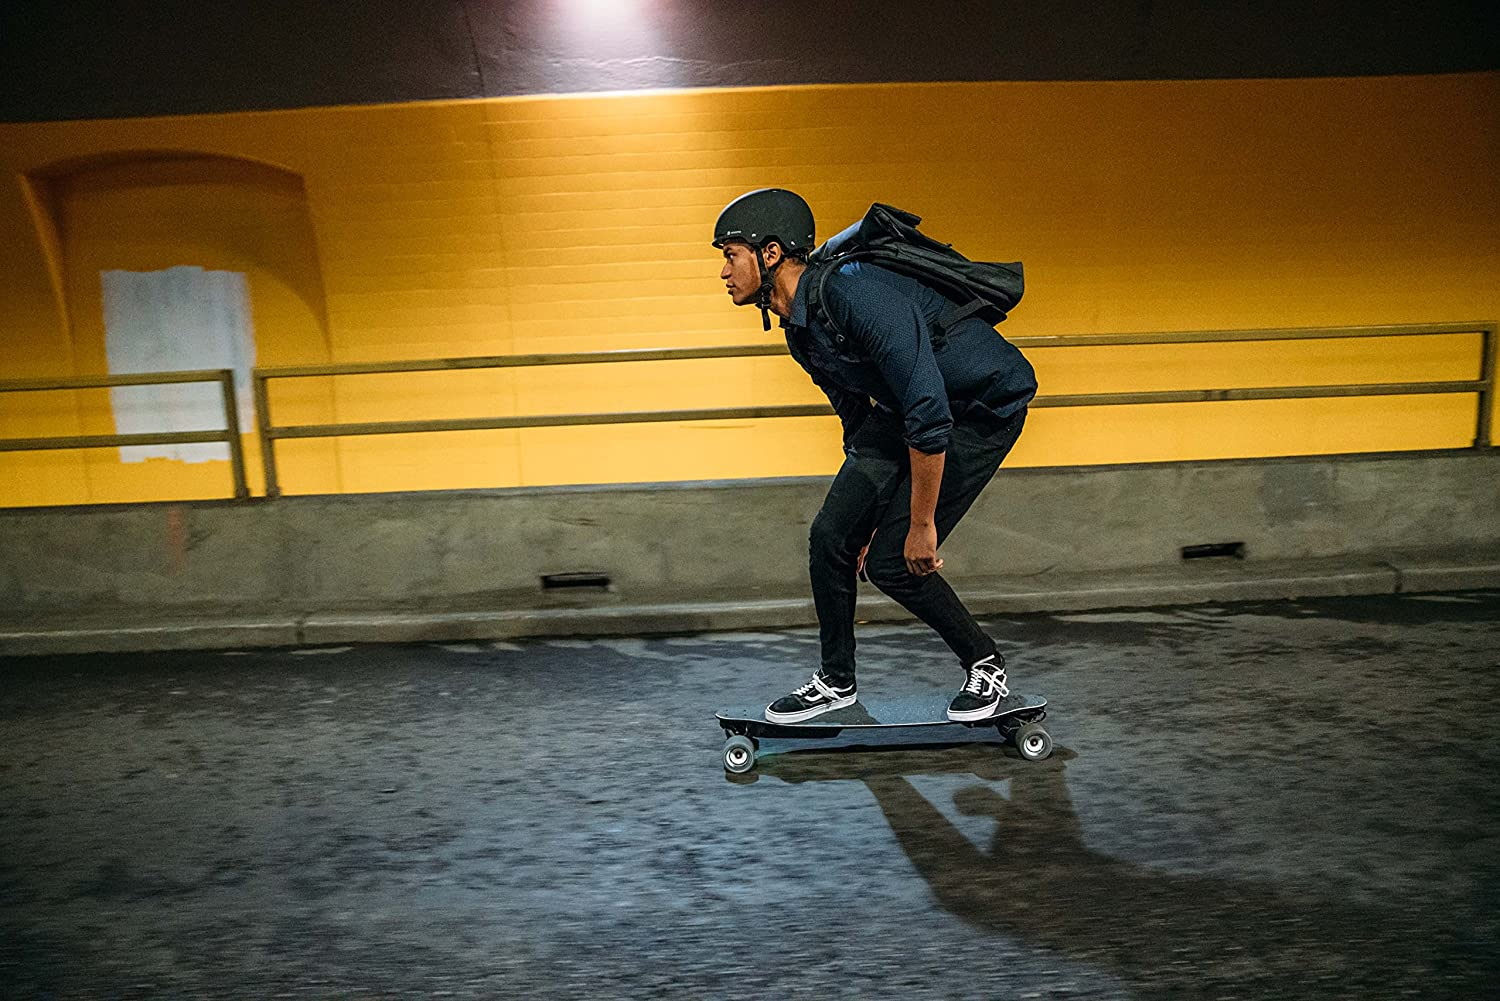 man riding boosted stealth